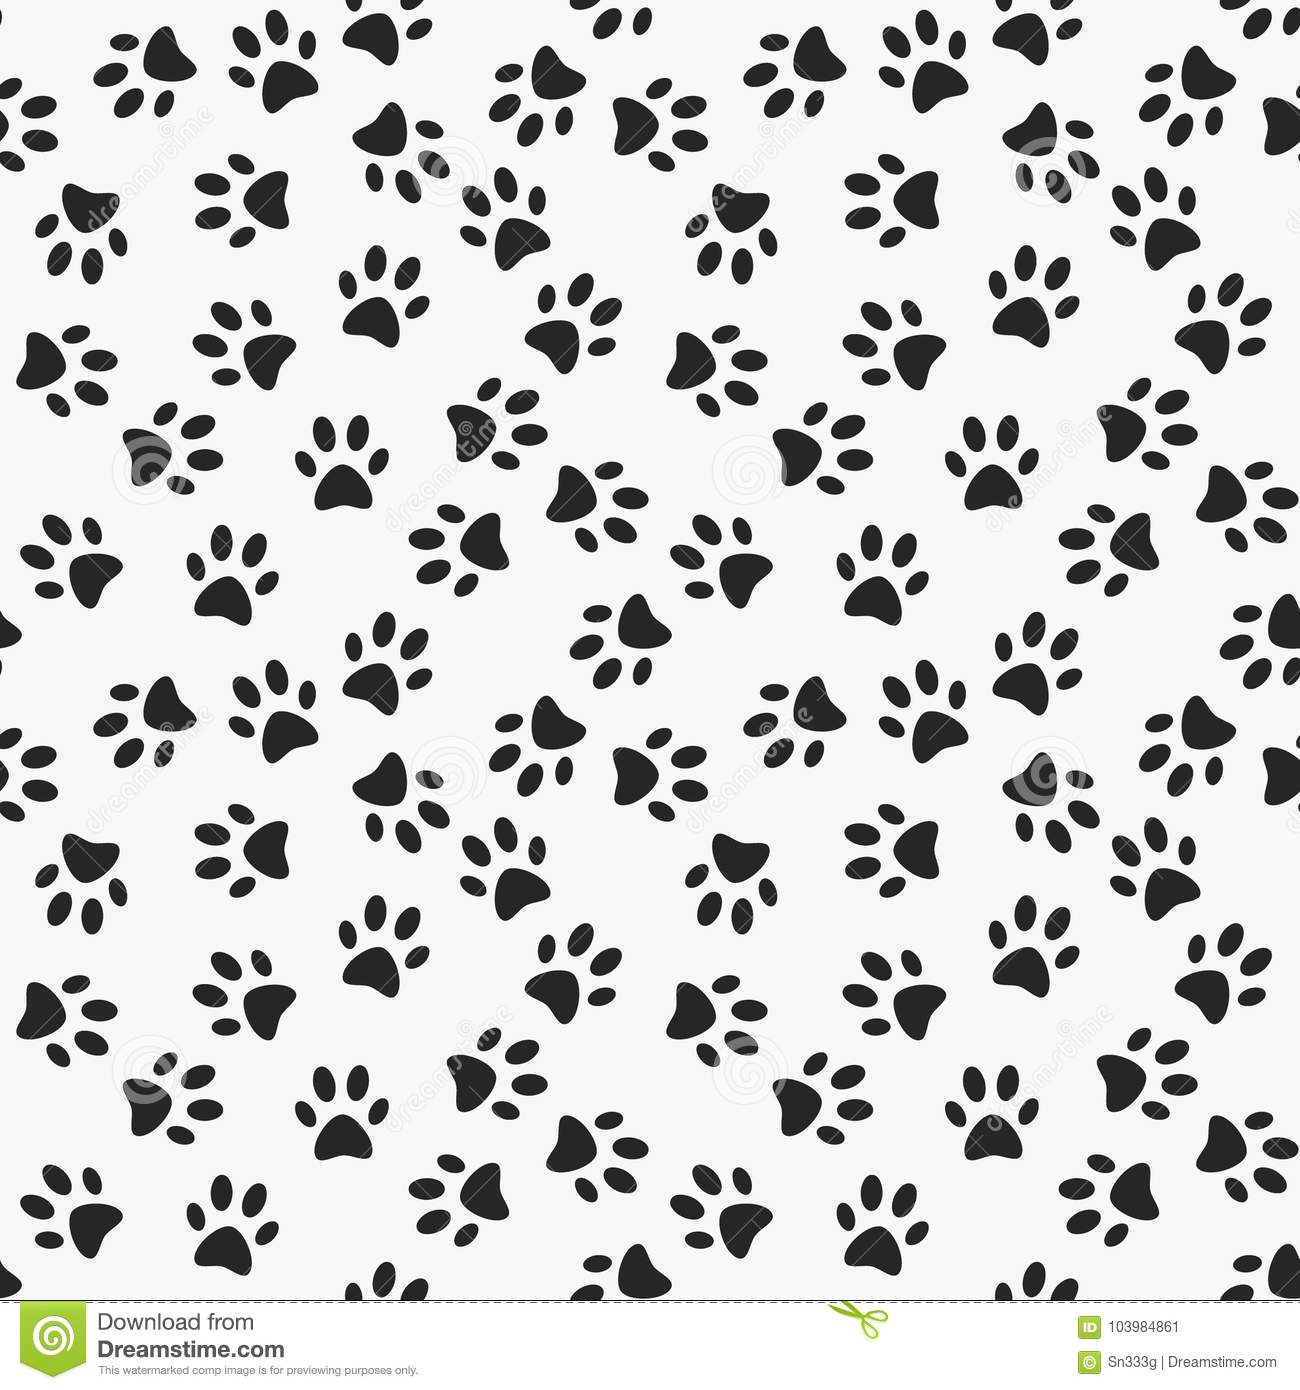 Dog Paw Print Vector Seamless Pattern Stock Vector - Illustration of